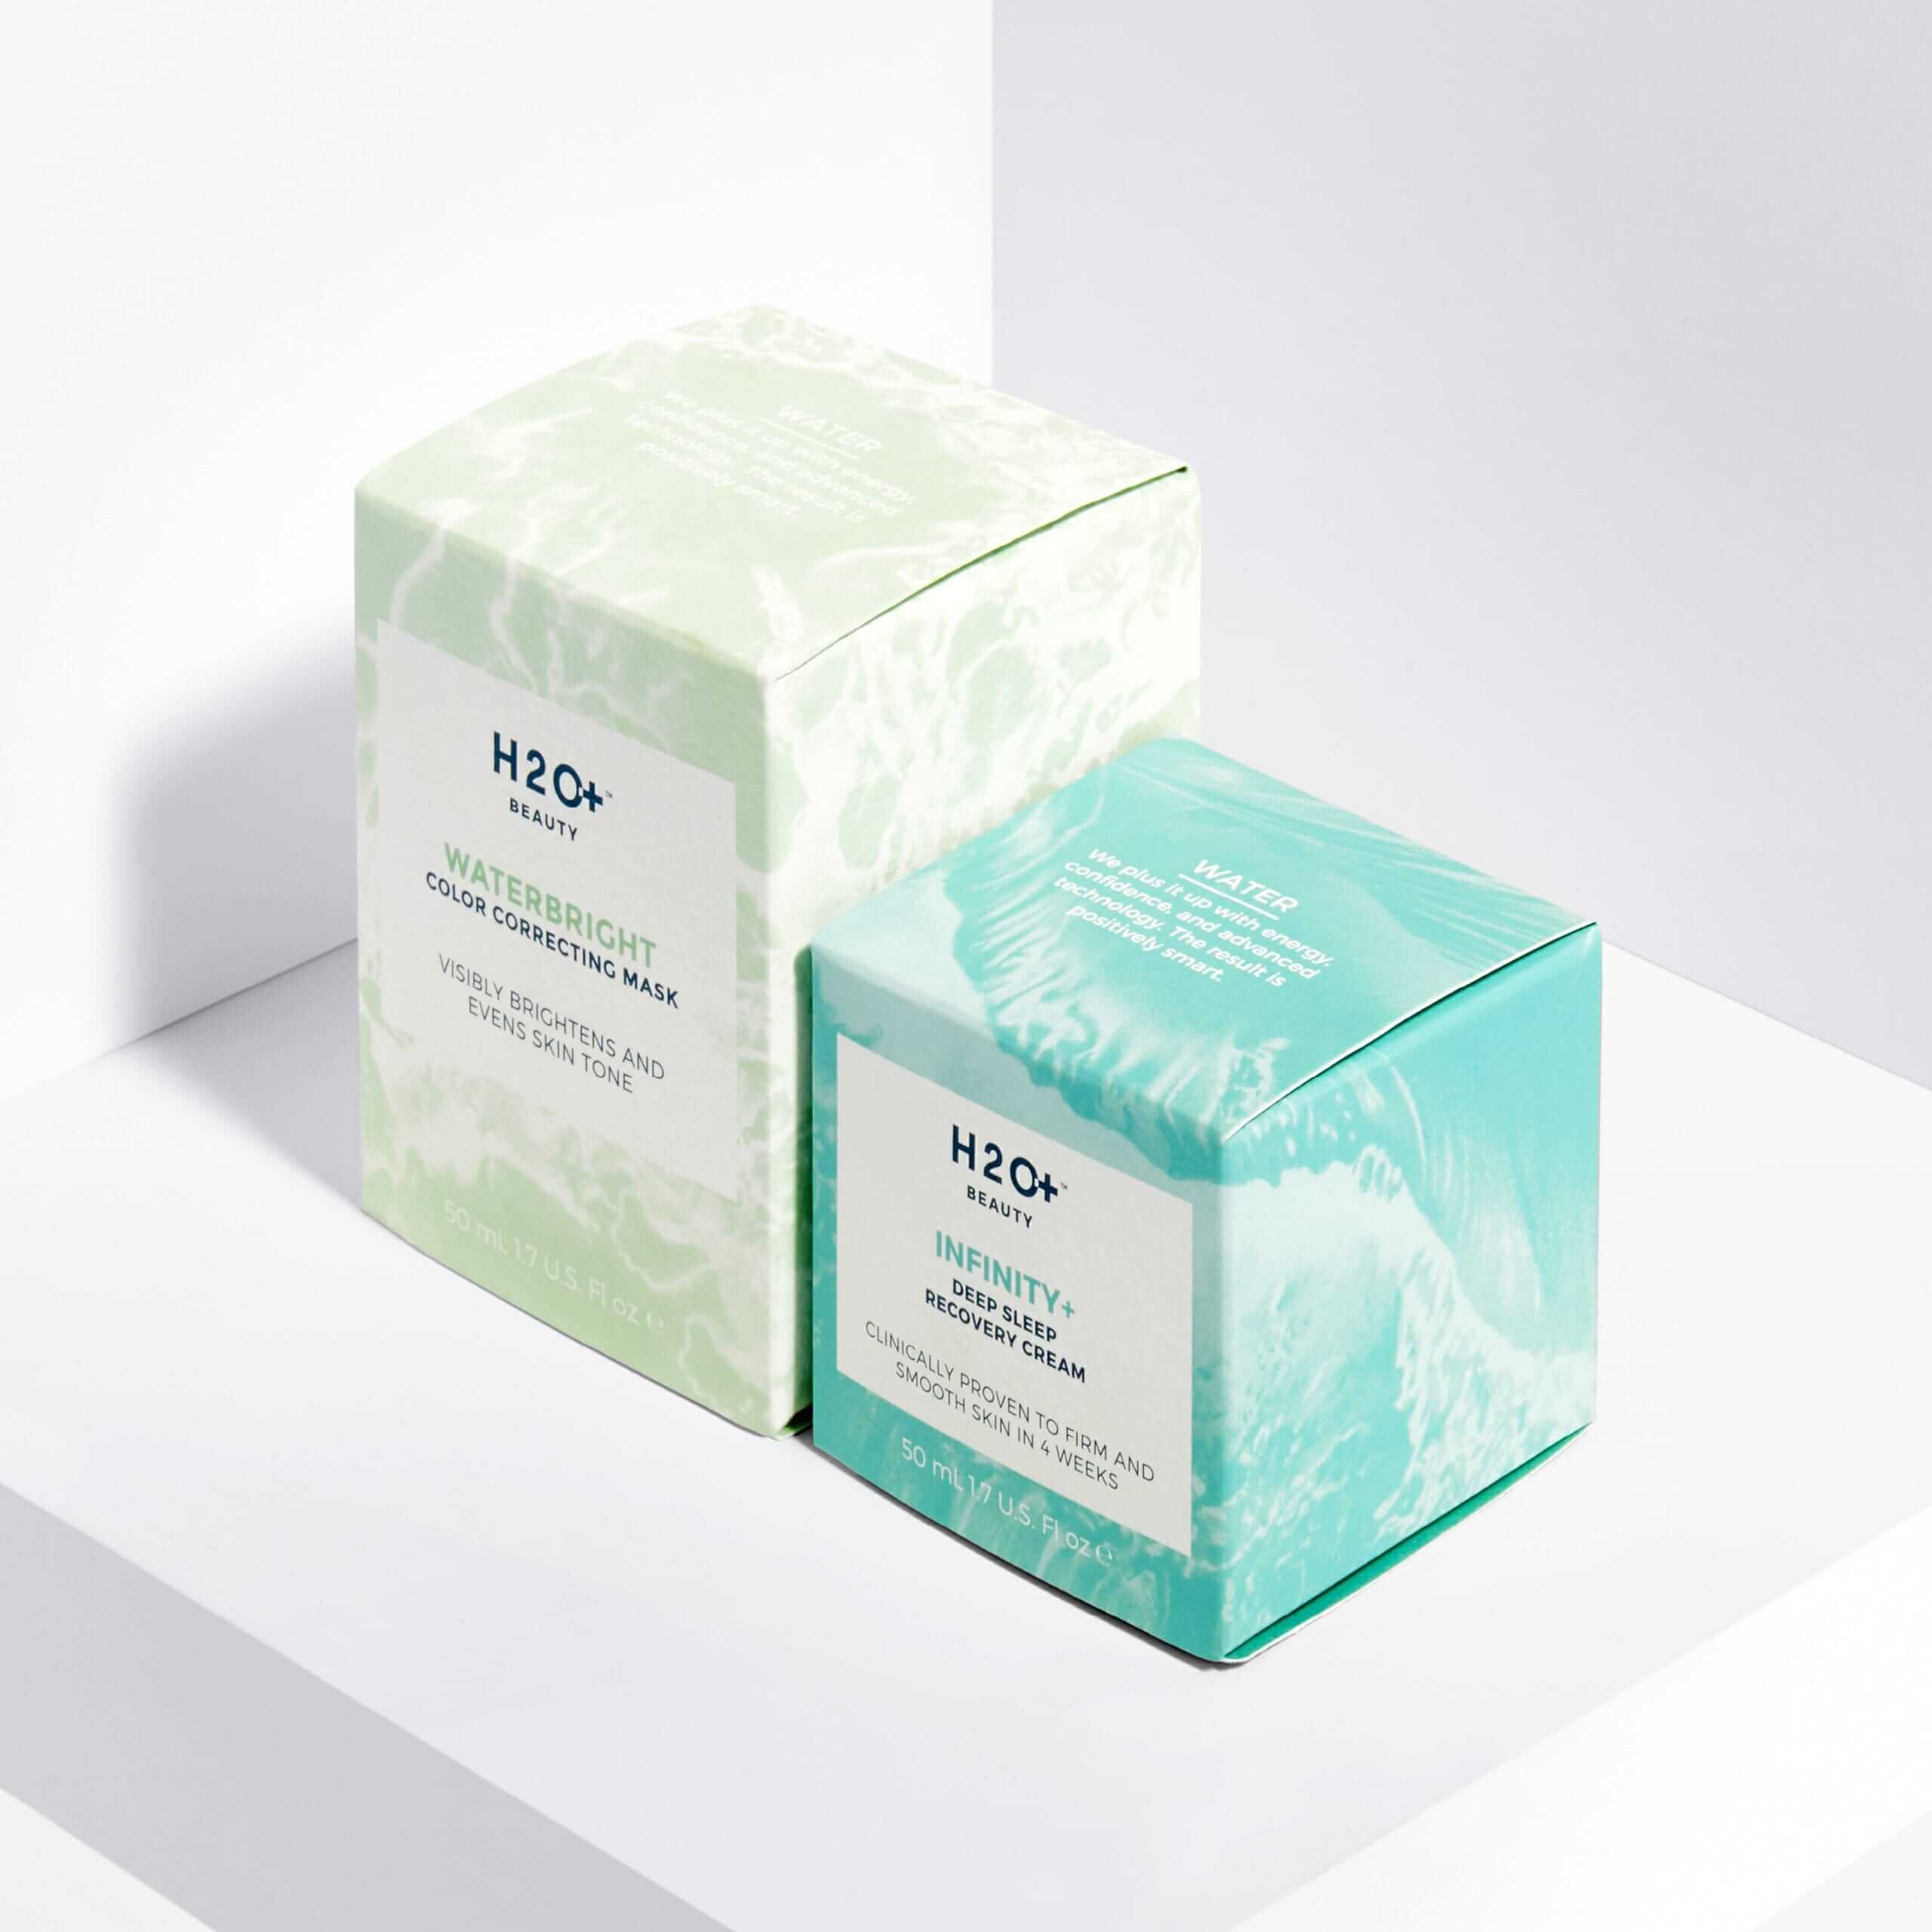 AI_H2O_Packaging_LR_4